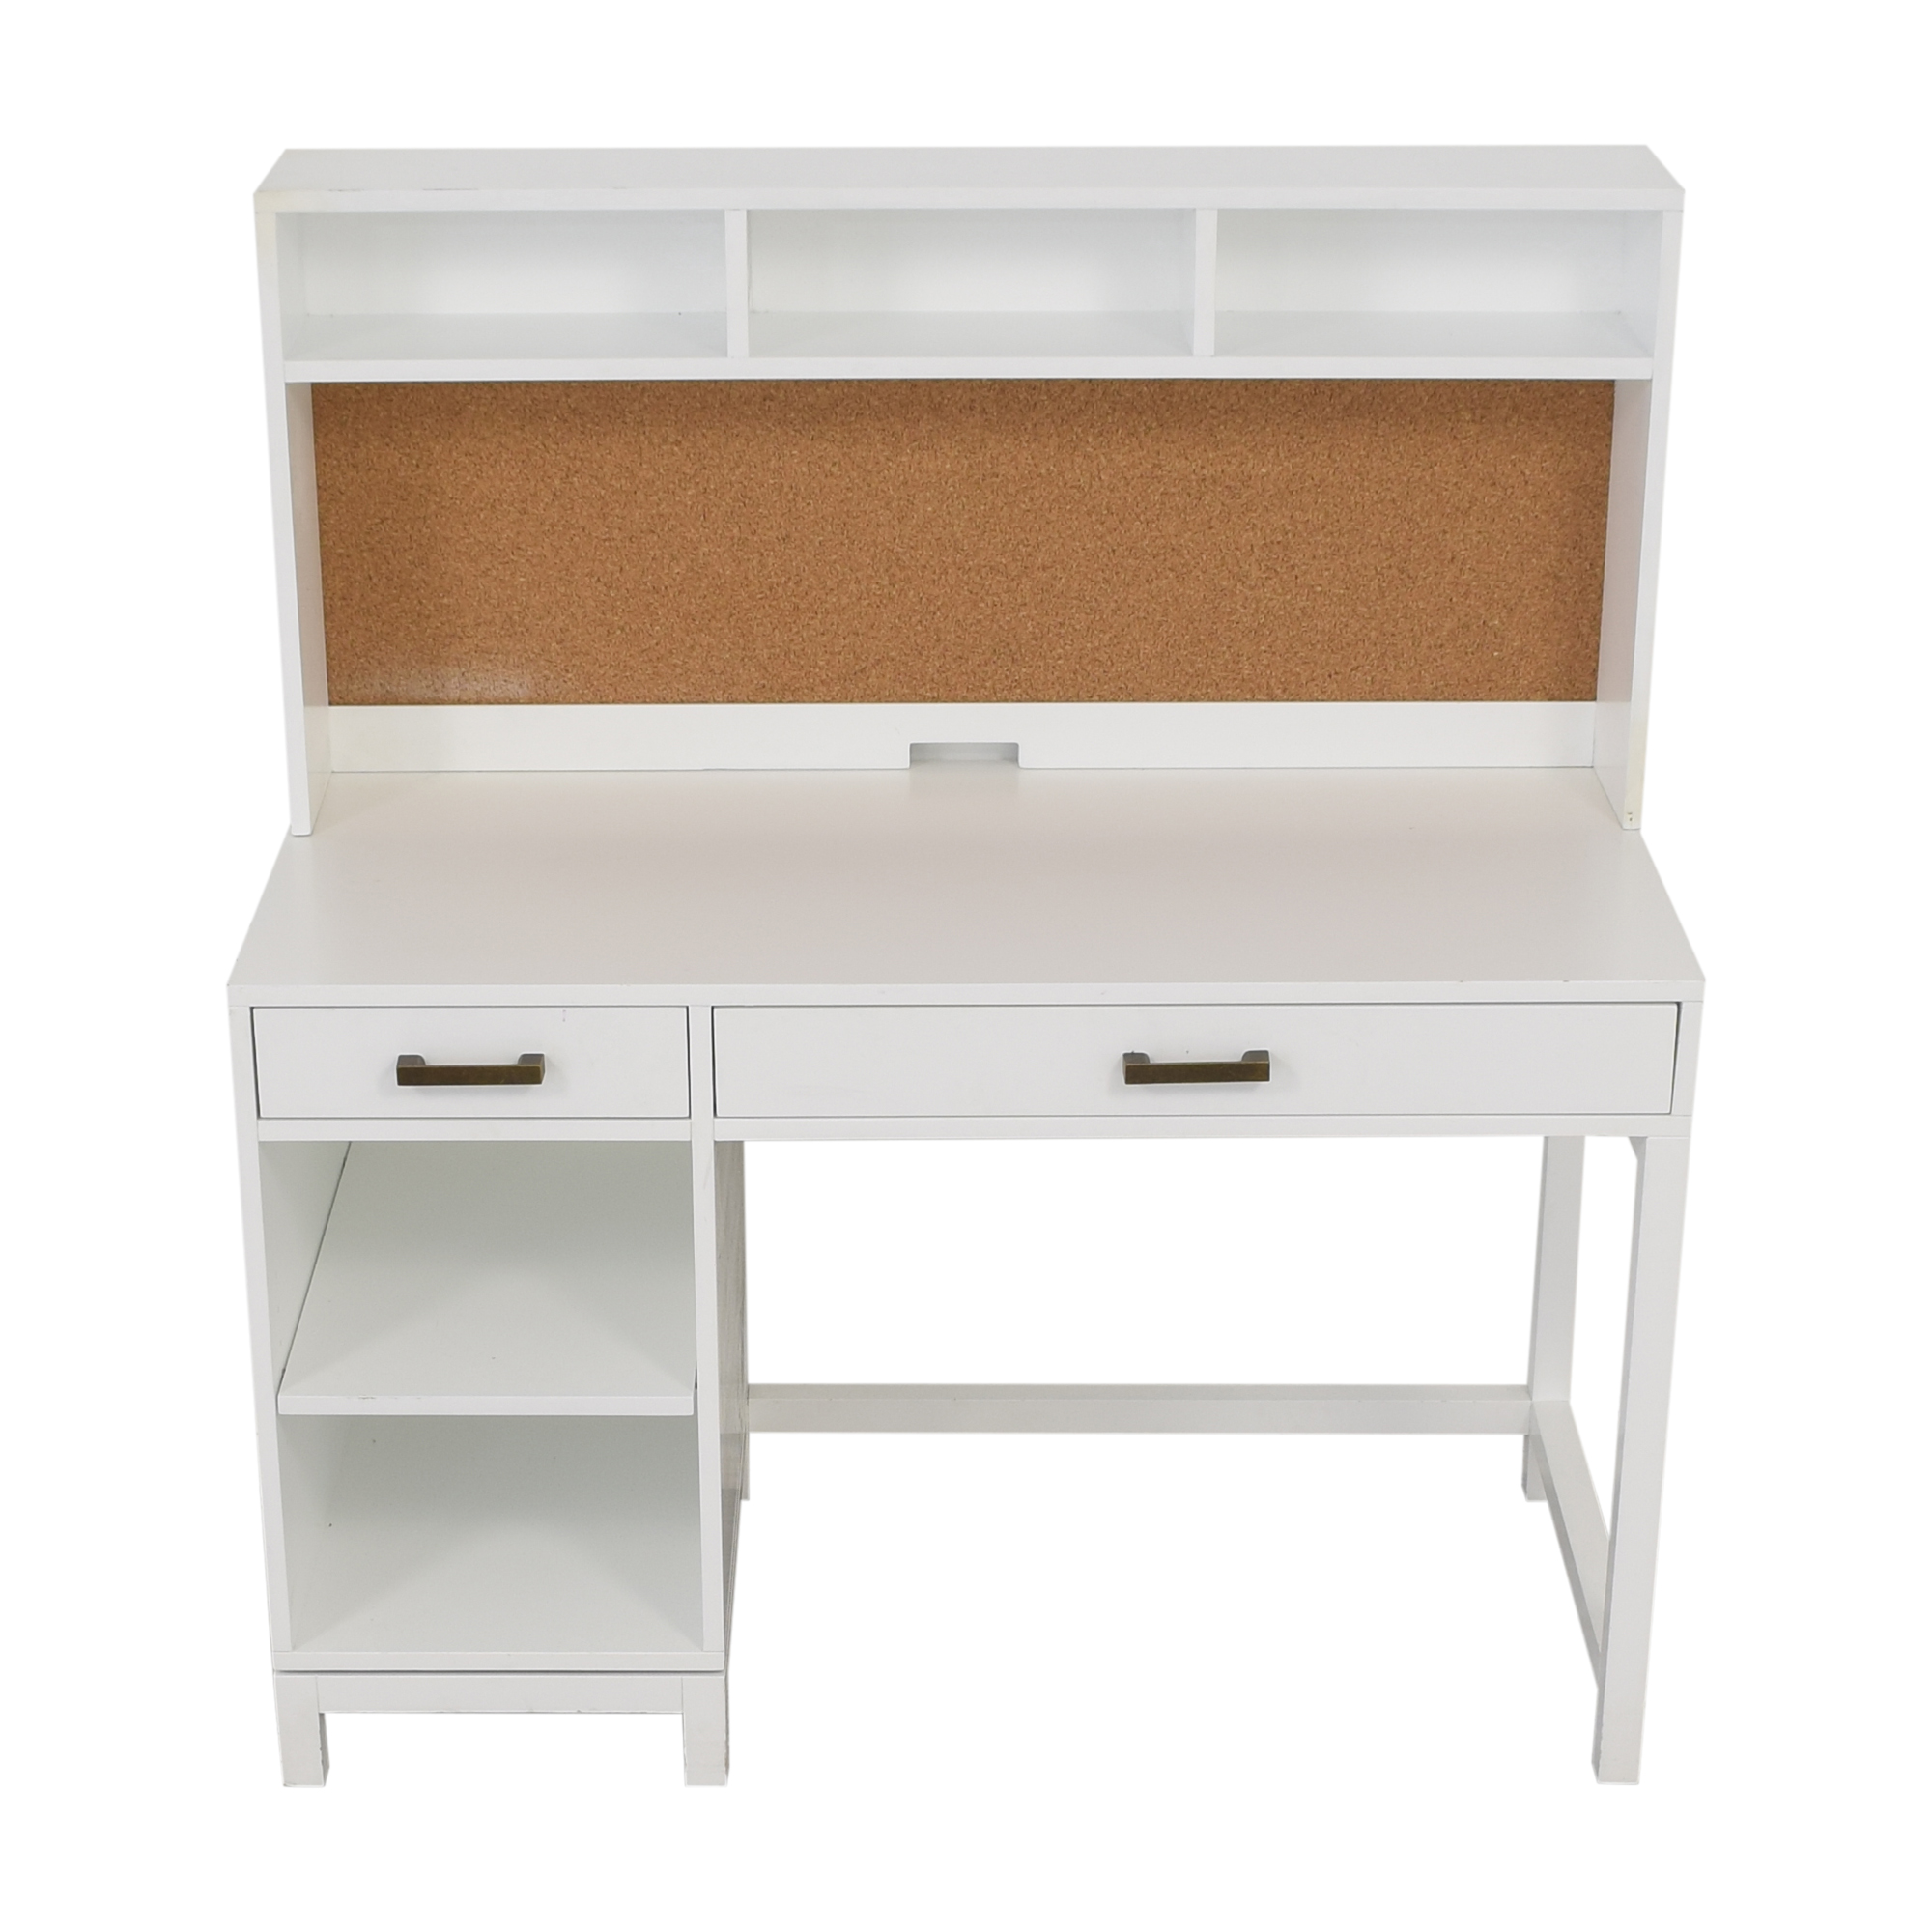 Land of Nod Land of Nod for Crate & Kids Parke Desk and Hutch